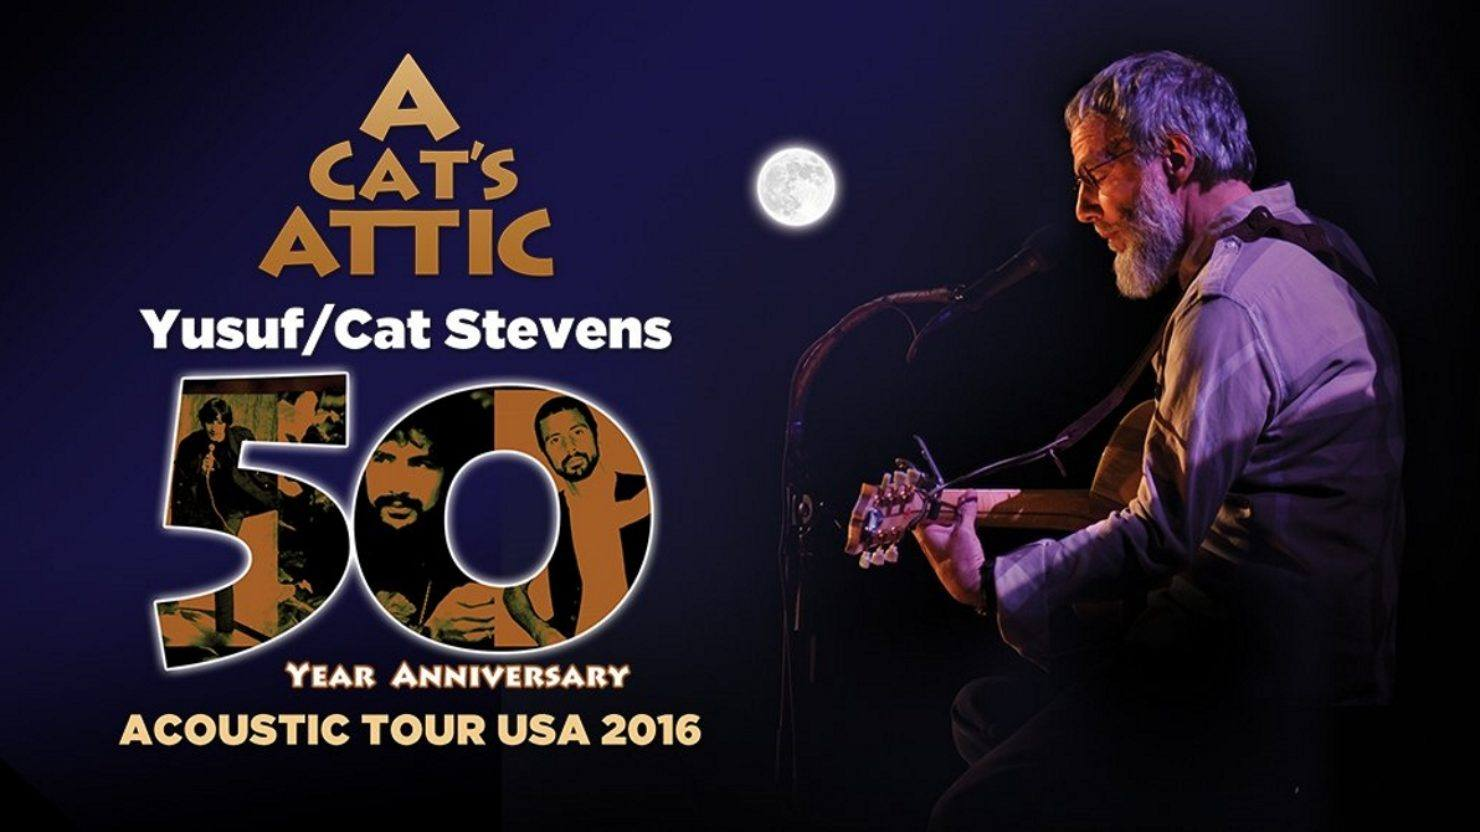 Yusuf Cat Stevens To Embark On A Cat S Attic Acoustic